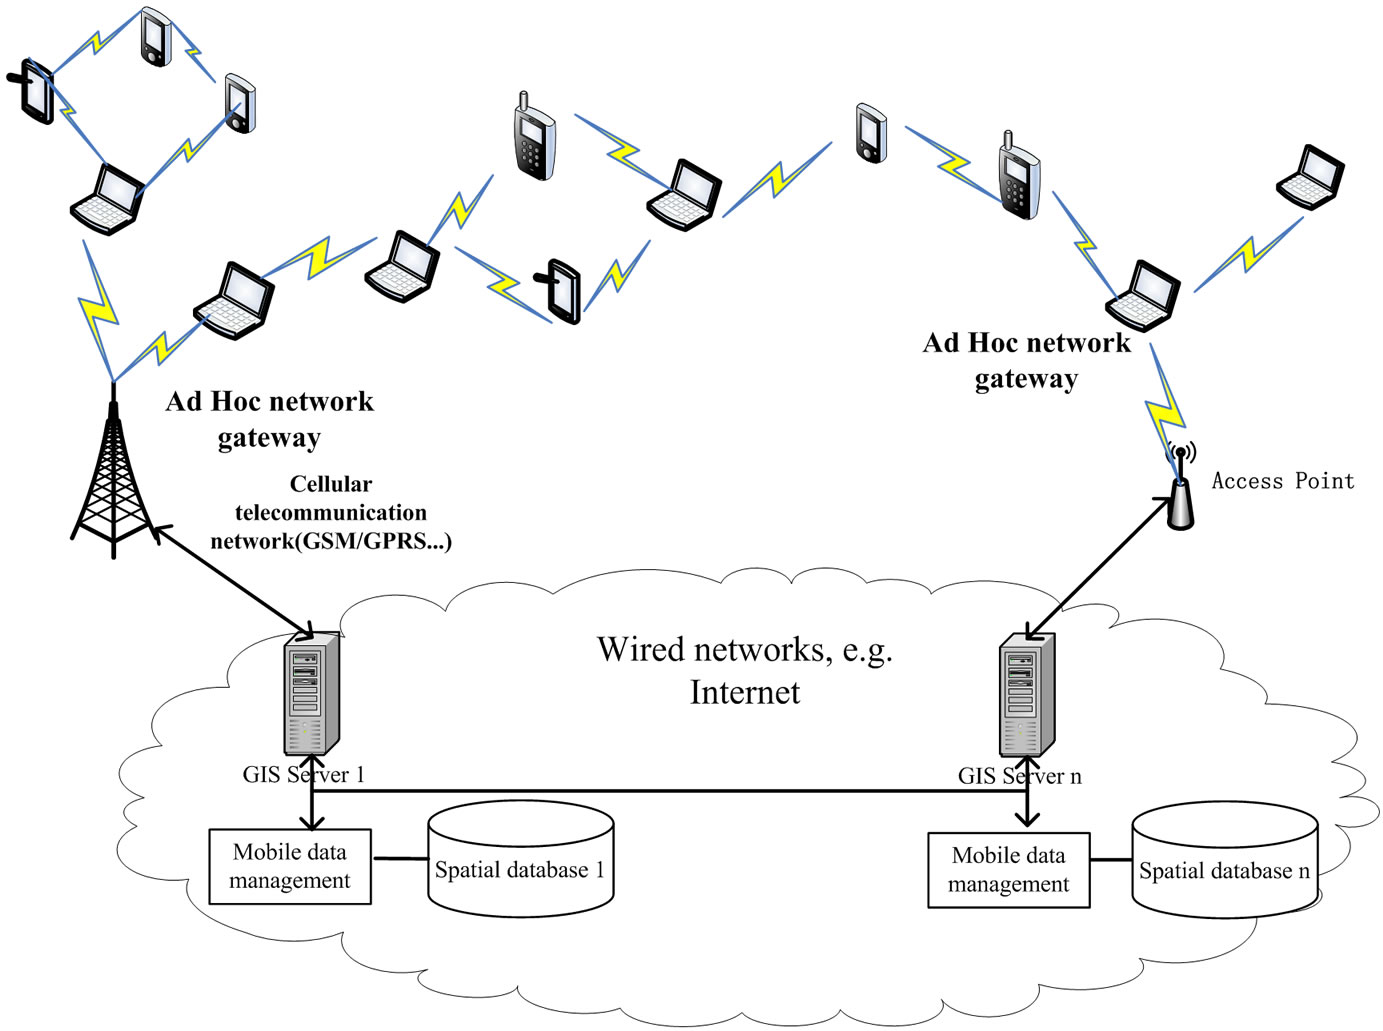 ad hoc wireless networks architectures and